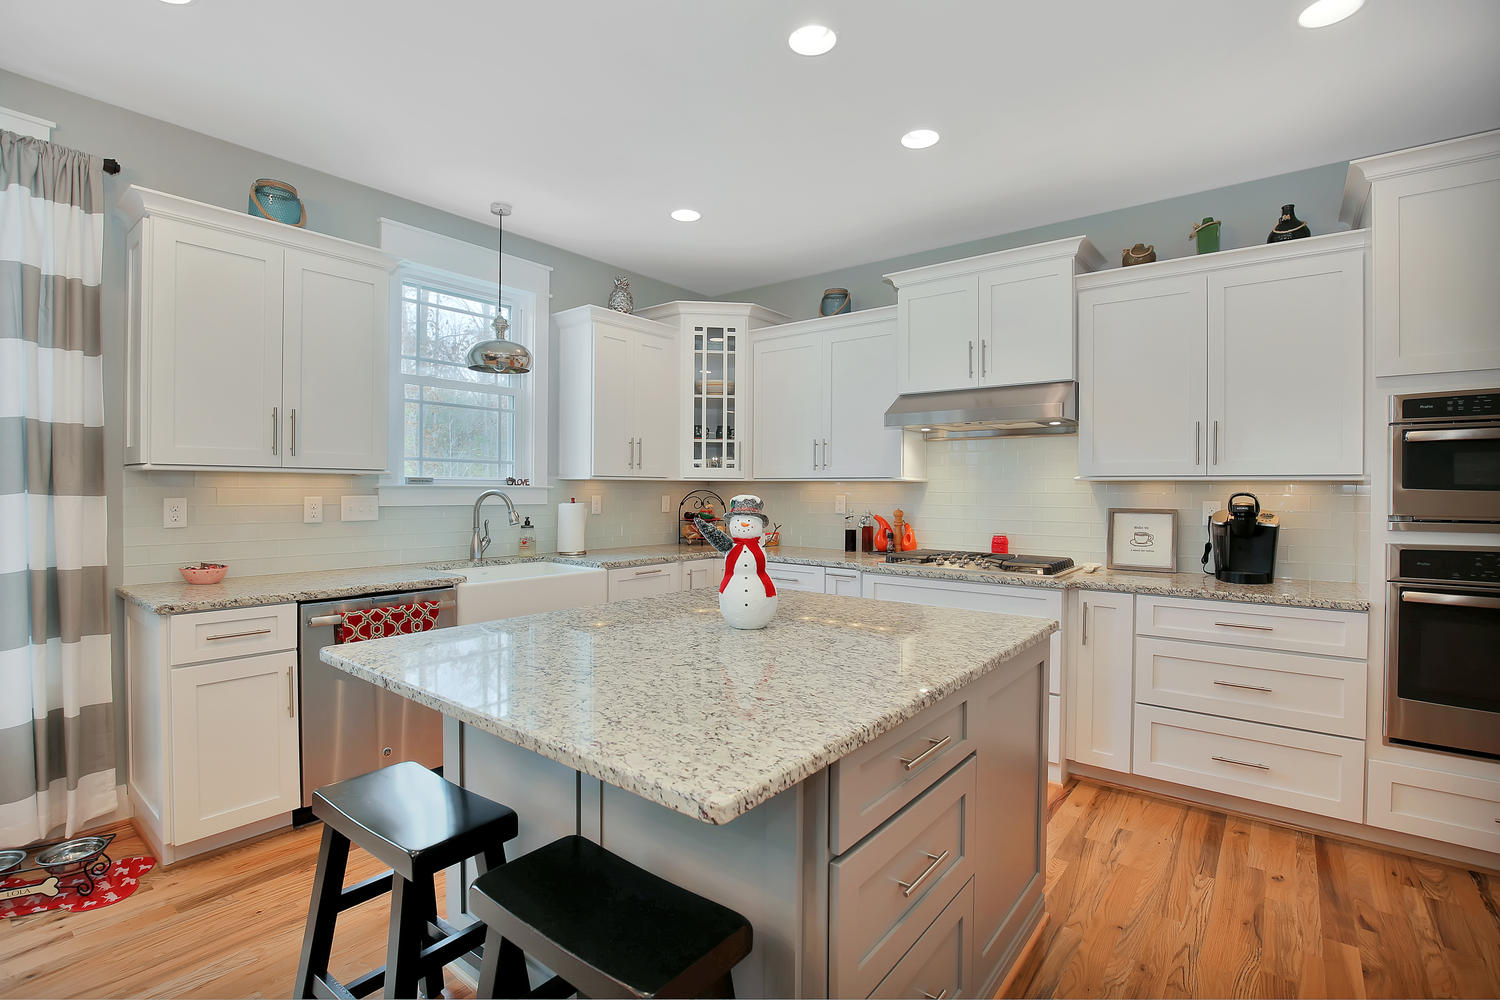 7813-rock-cress-dr-moseley-va-large-010-2-kitchen-1500x1000-72dpi